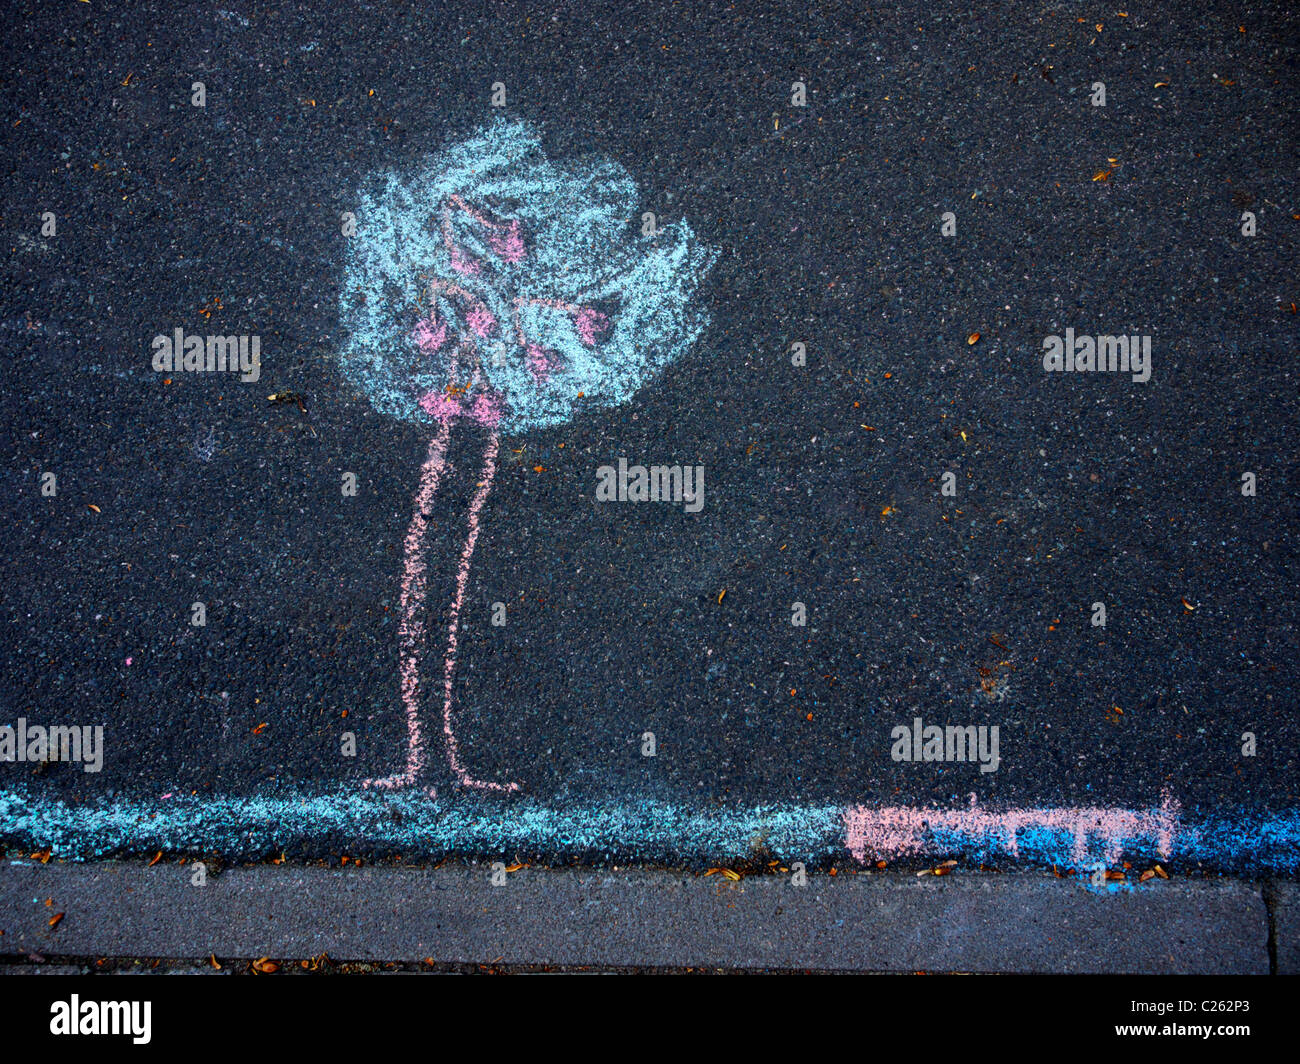 Chalk drawing depicting a tree on the street - Stock Image